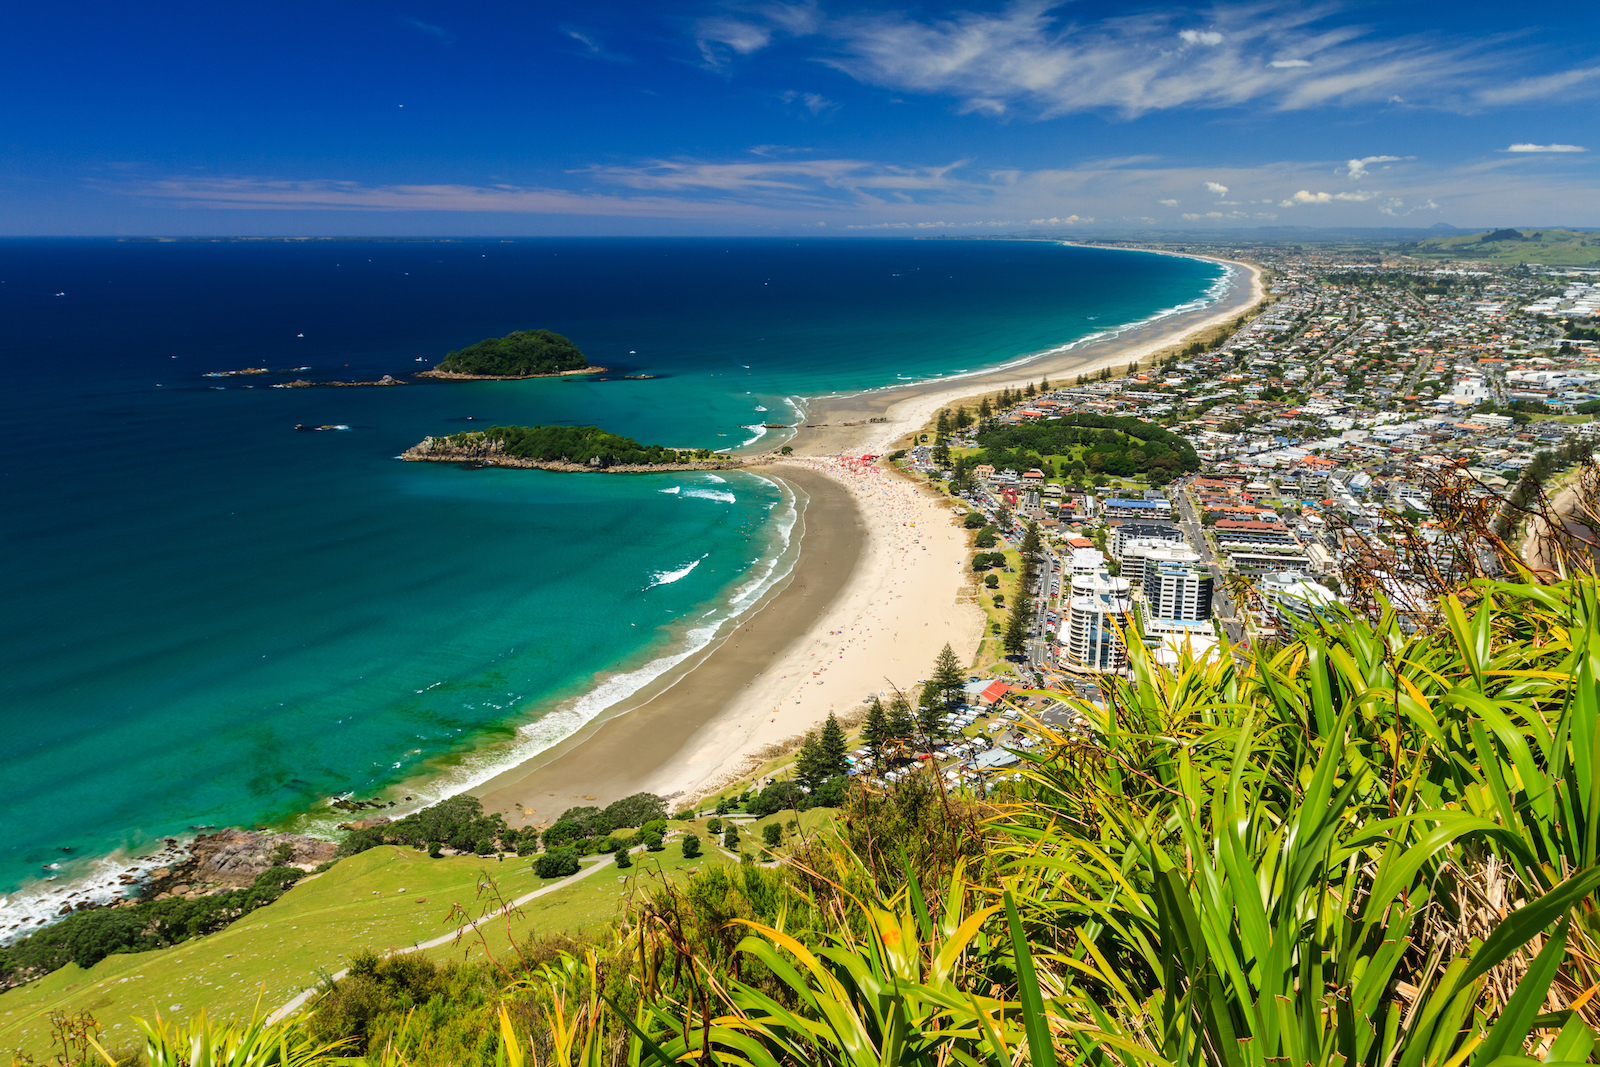 Beach and township views from the top of a hill in Tauranga, New Zealand